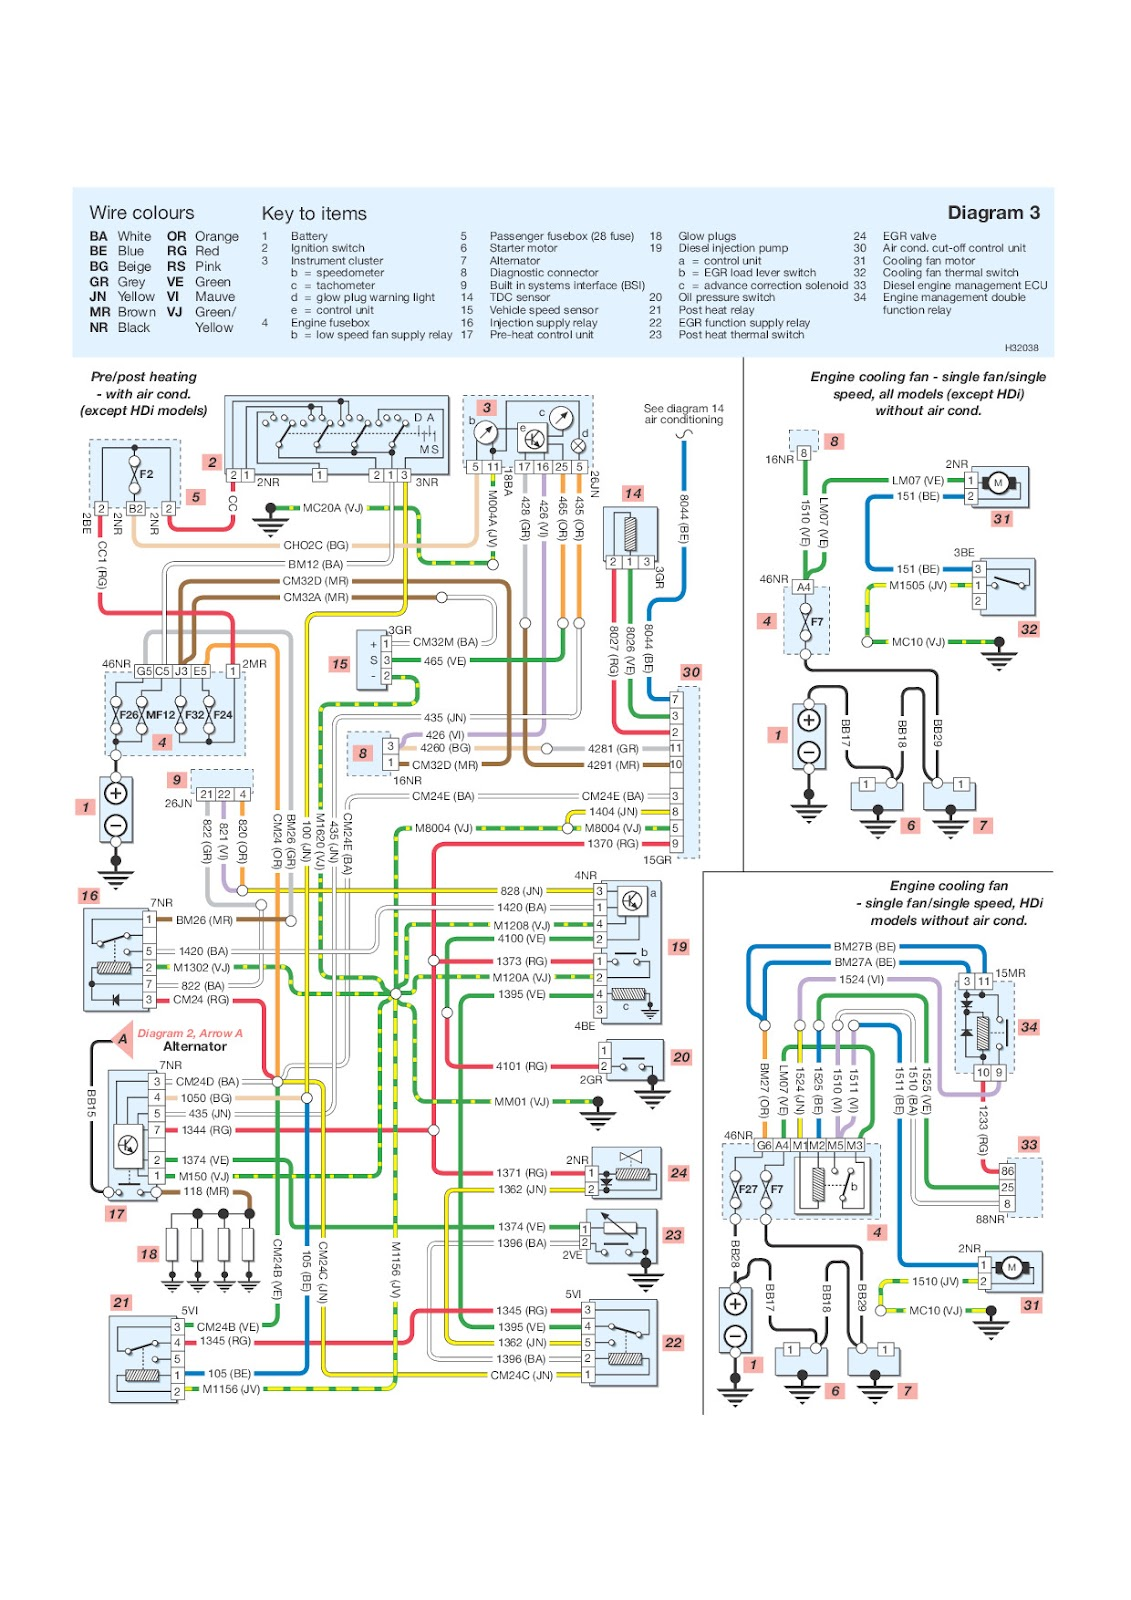 Peugeot 306 2 0 hdi wiring diagram somurich peugeot 306 2 0 hdi wiring diagram wiring diagram for a peugeot 206rhsvlc asfbconference2016 Images